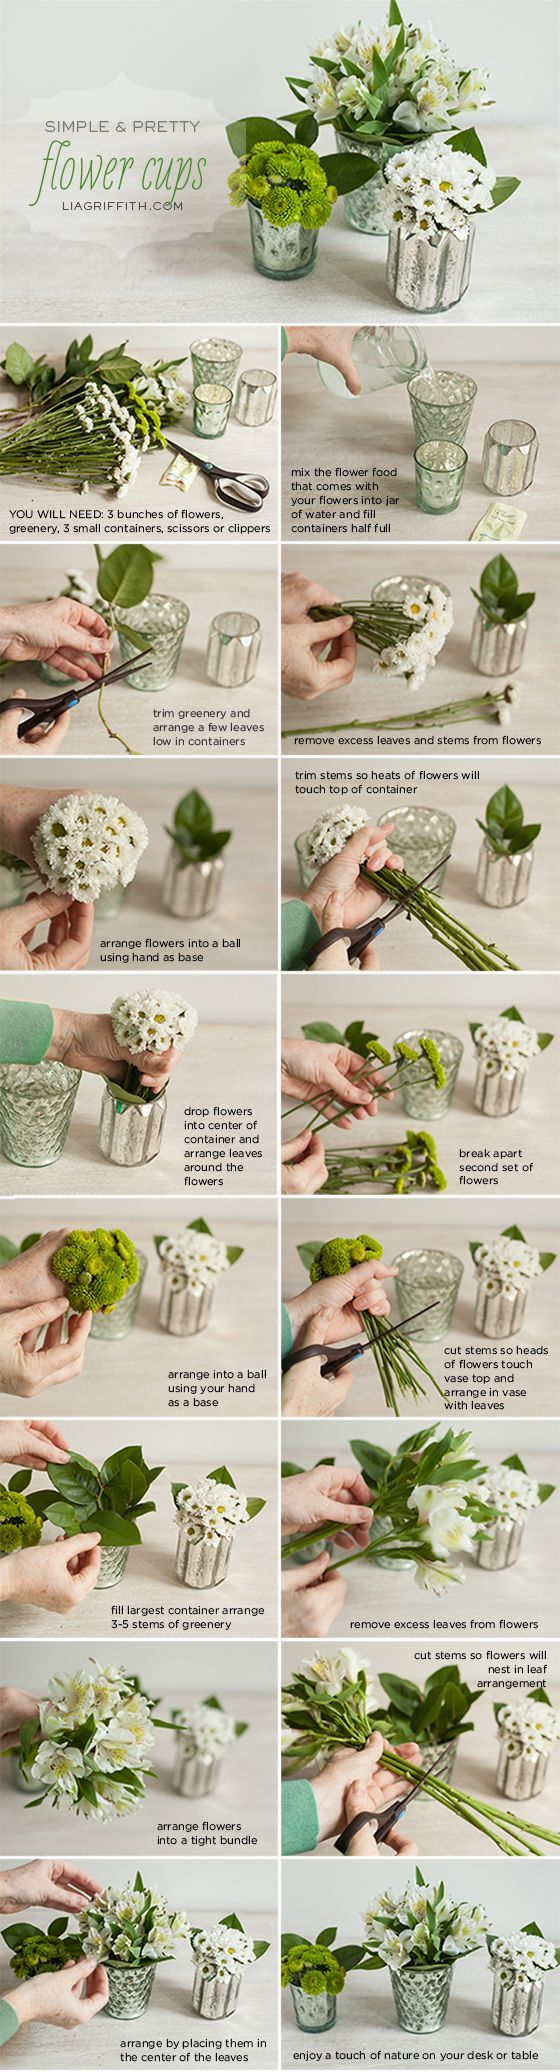 Mini Flower Cup Tutorial http://liagriffith.com/add-a-little-bit-of-spring-to-your-office-desk/